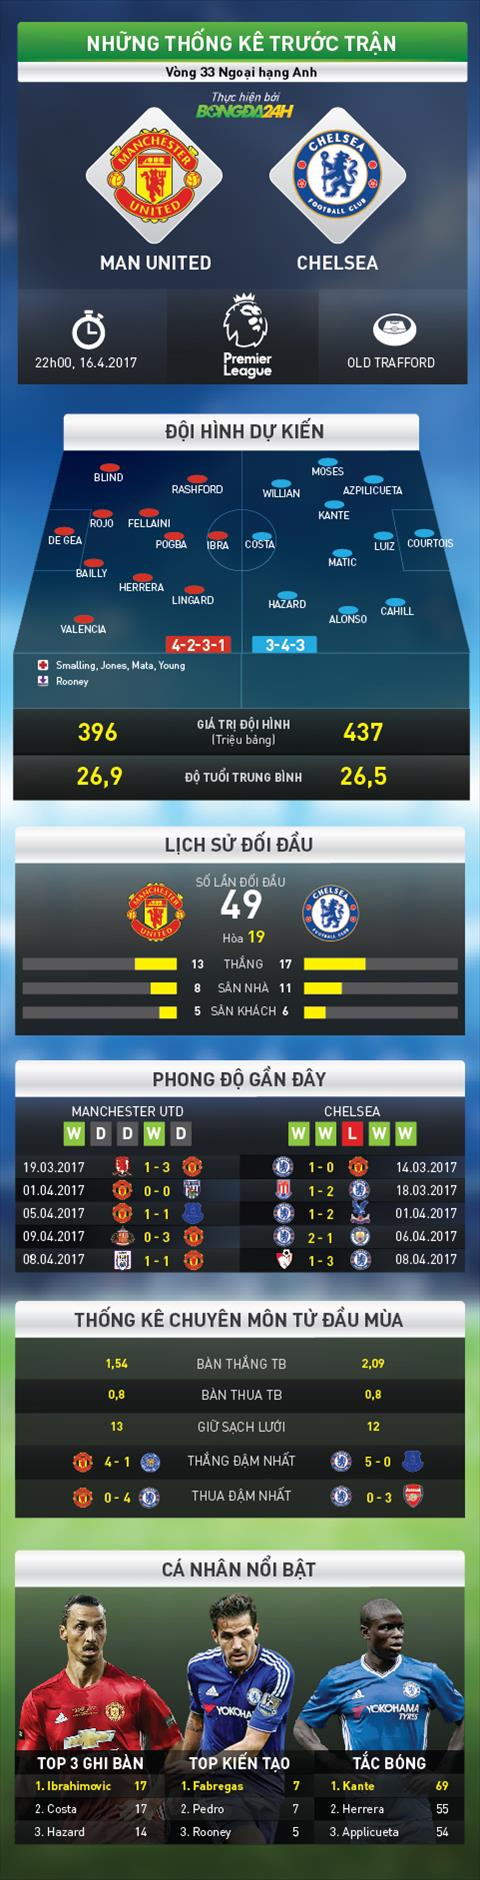 Conte MU co the can dich Premier League trong top 4 hinh anh 2